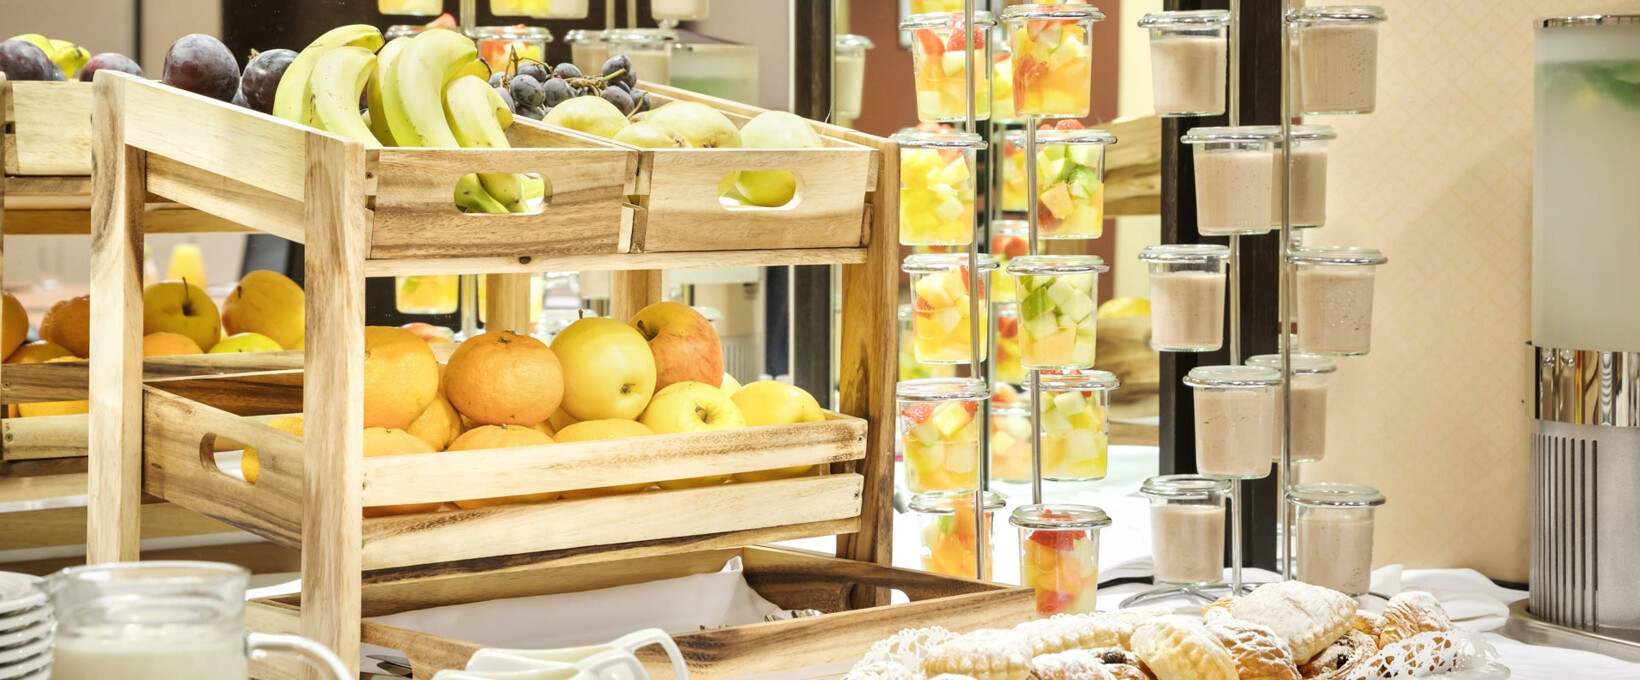 Seminar Buffet with fruits | Hotel Ananas in Vienna